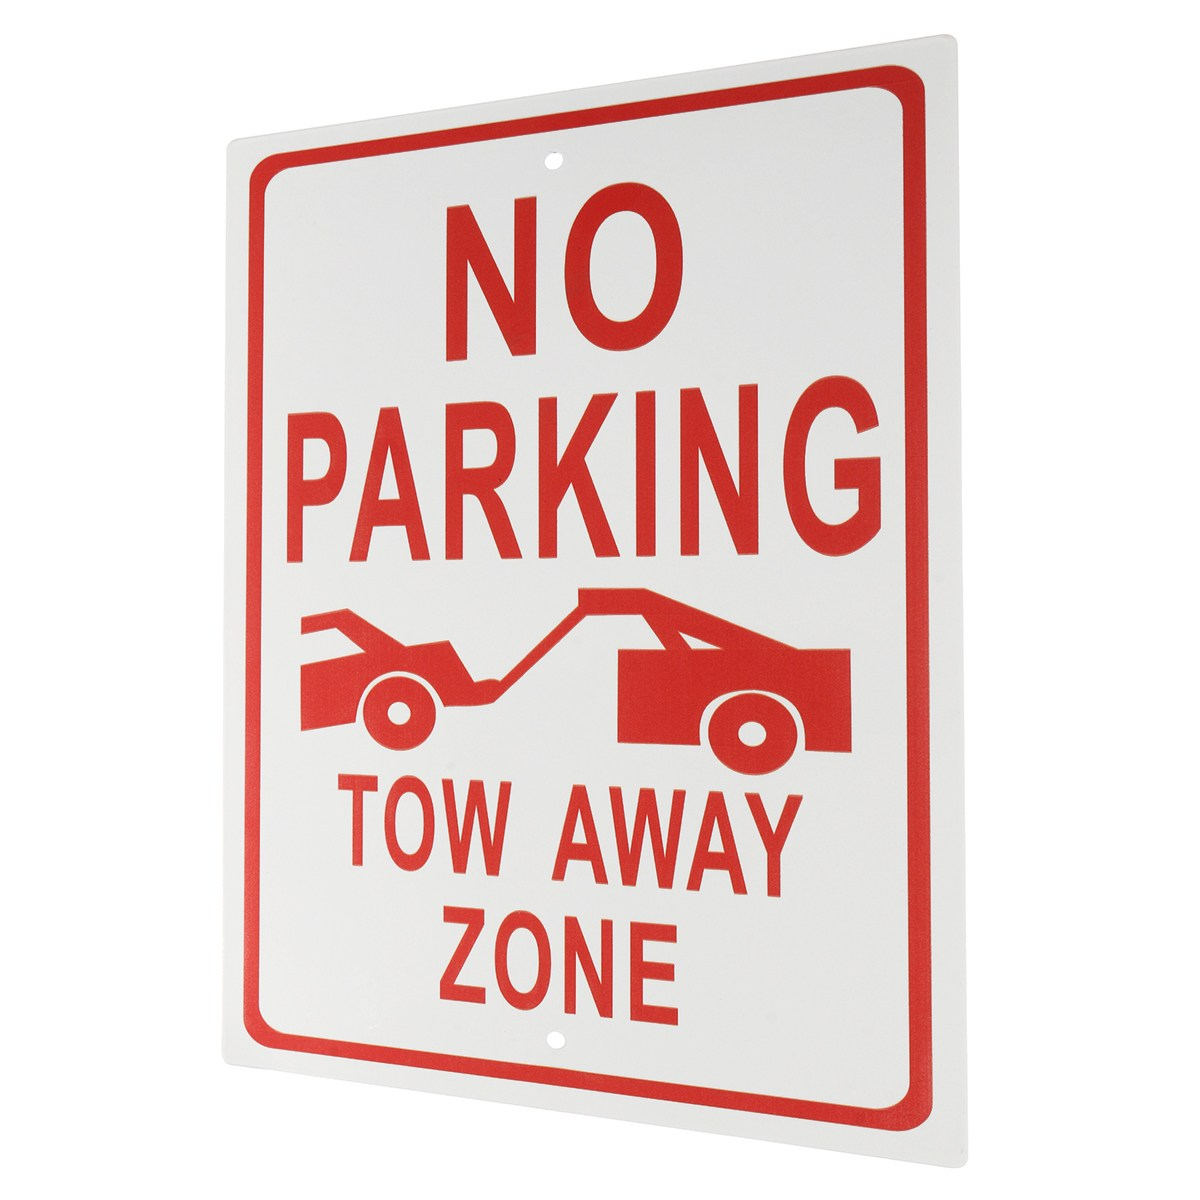 NEW Aluminum Alloy No Parking-Tow Away Zone Warning Sign Workplace Safety Security ...